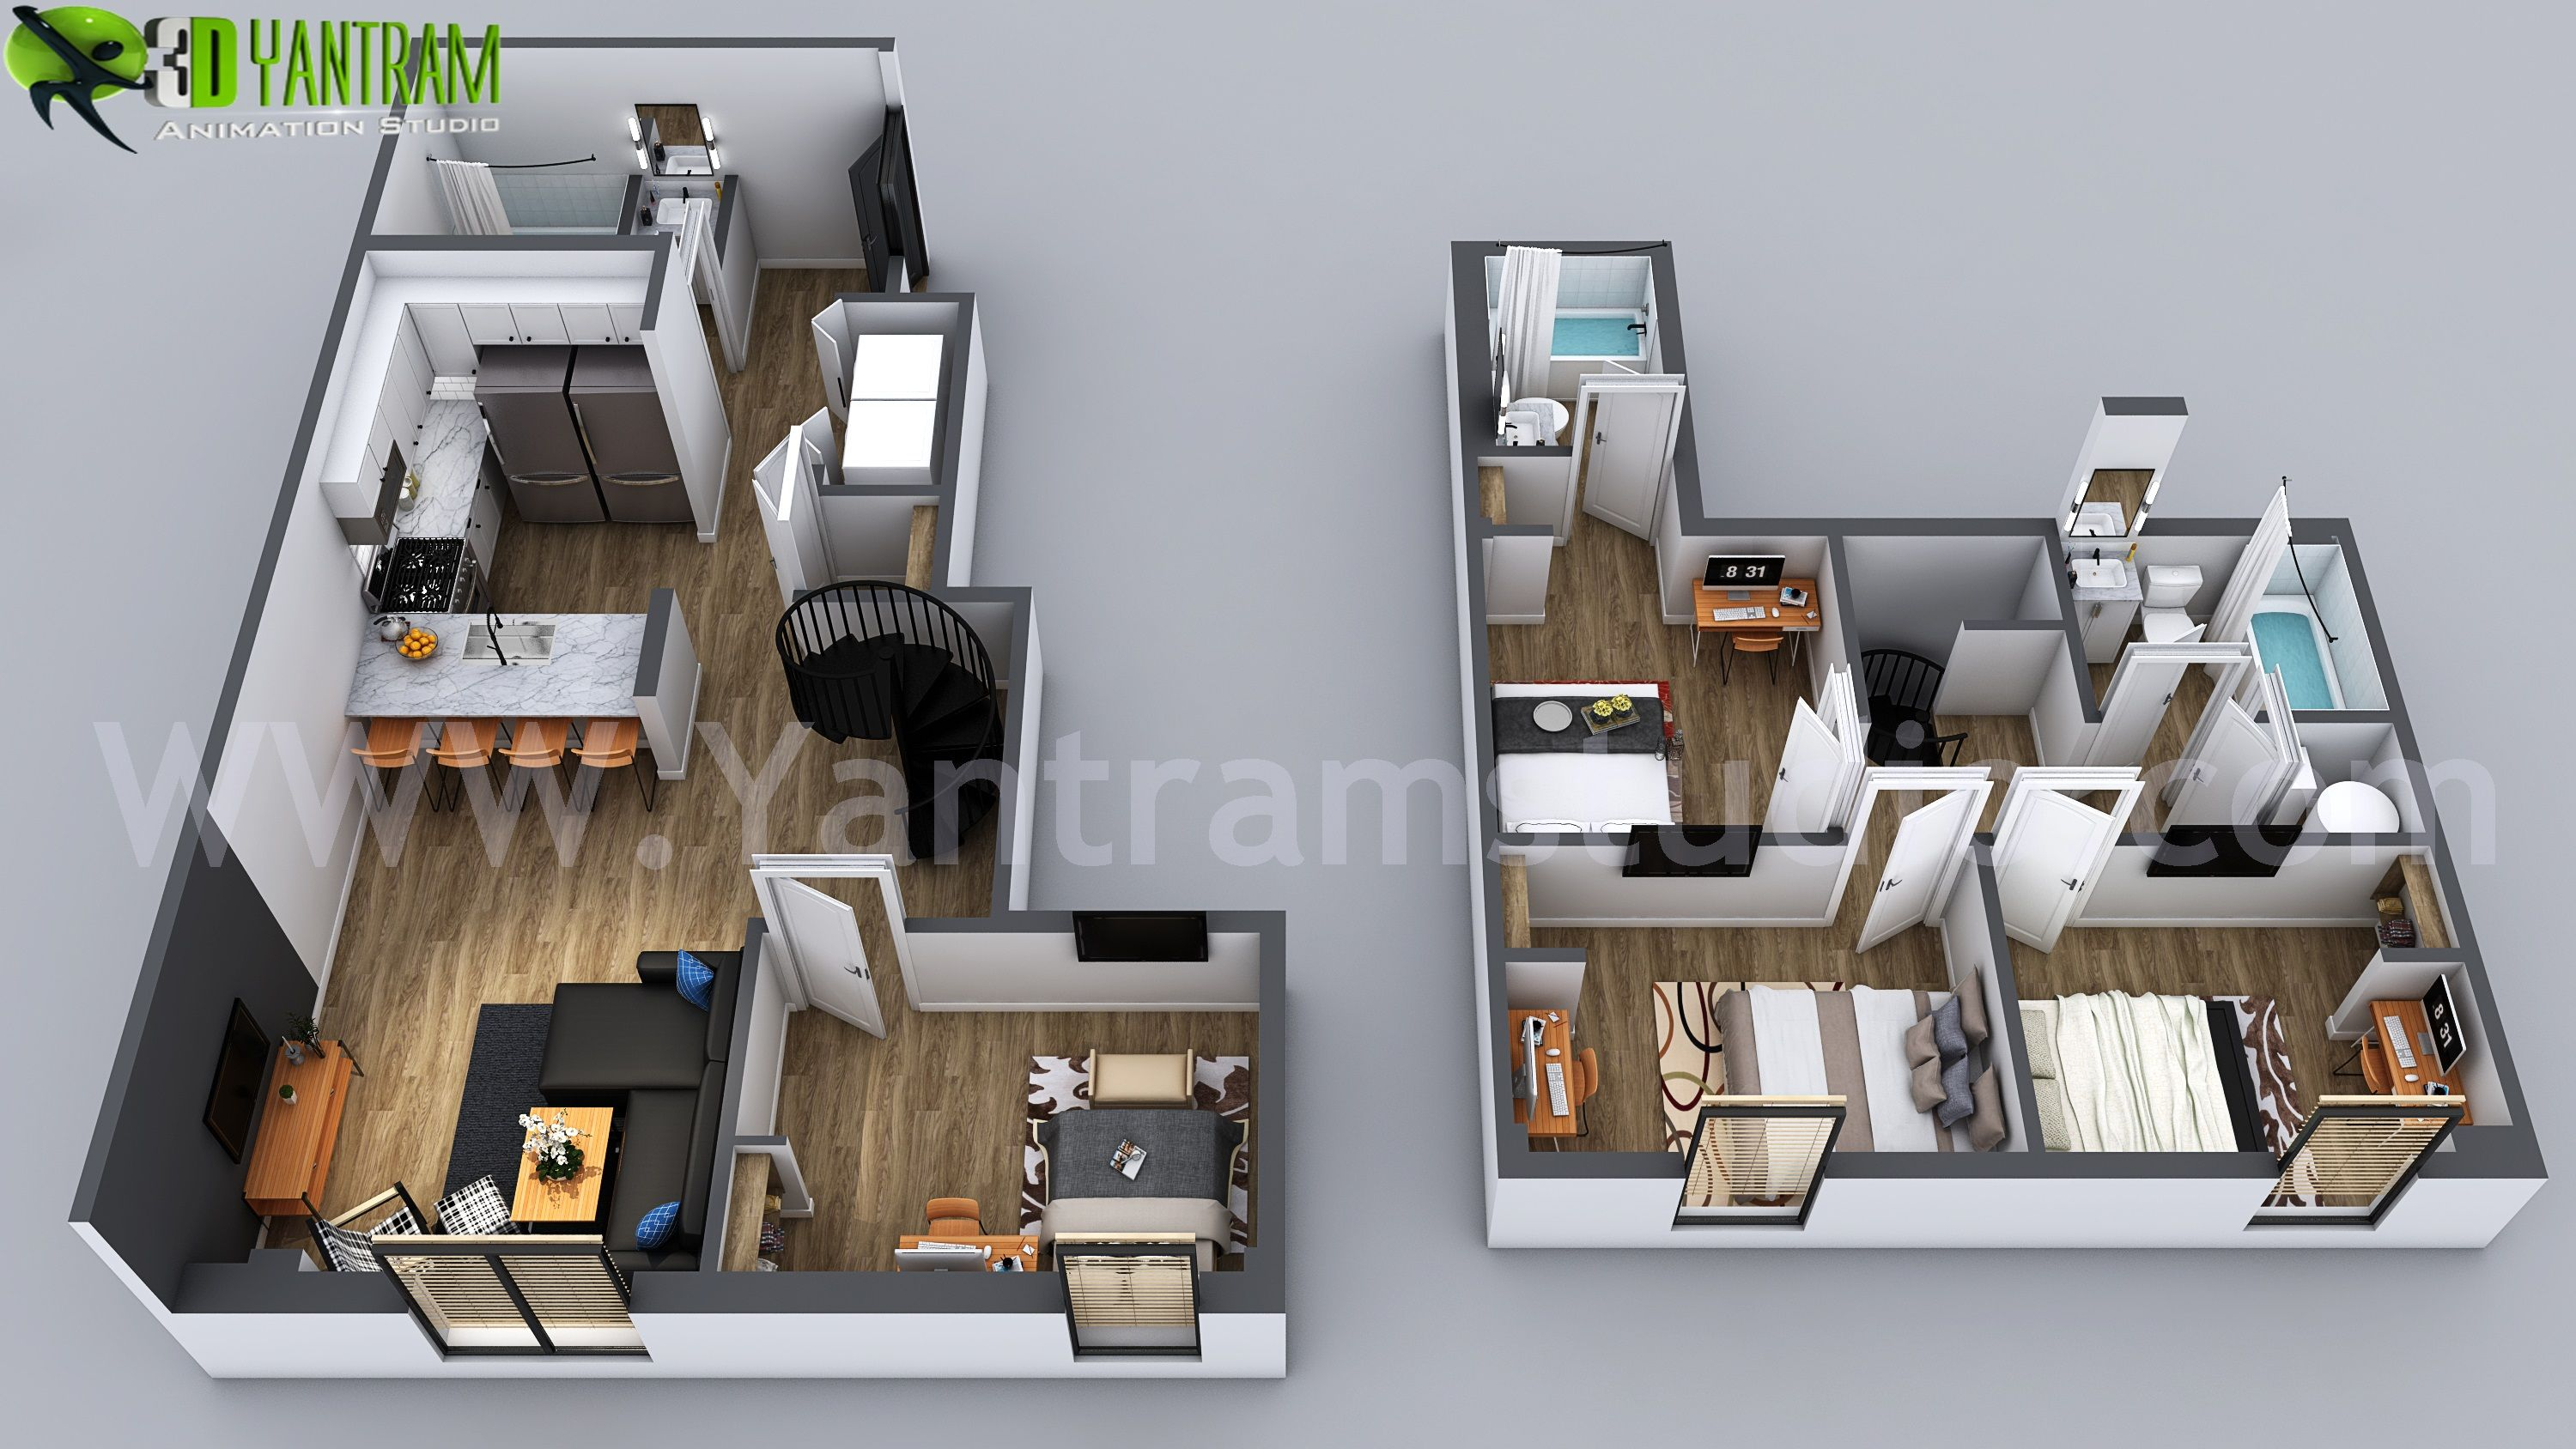 3d Home Floor Plan Designs By Yantram Floor Plan Designer Washington Usa Flooring Floorpl Architectural Design Studio Floor Plan Design House Floor Plans